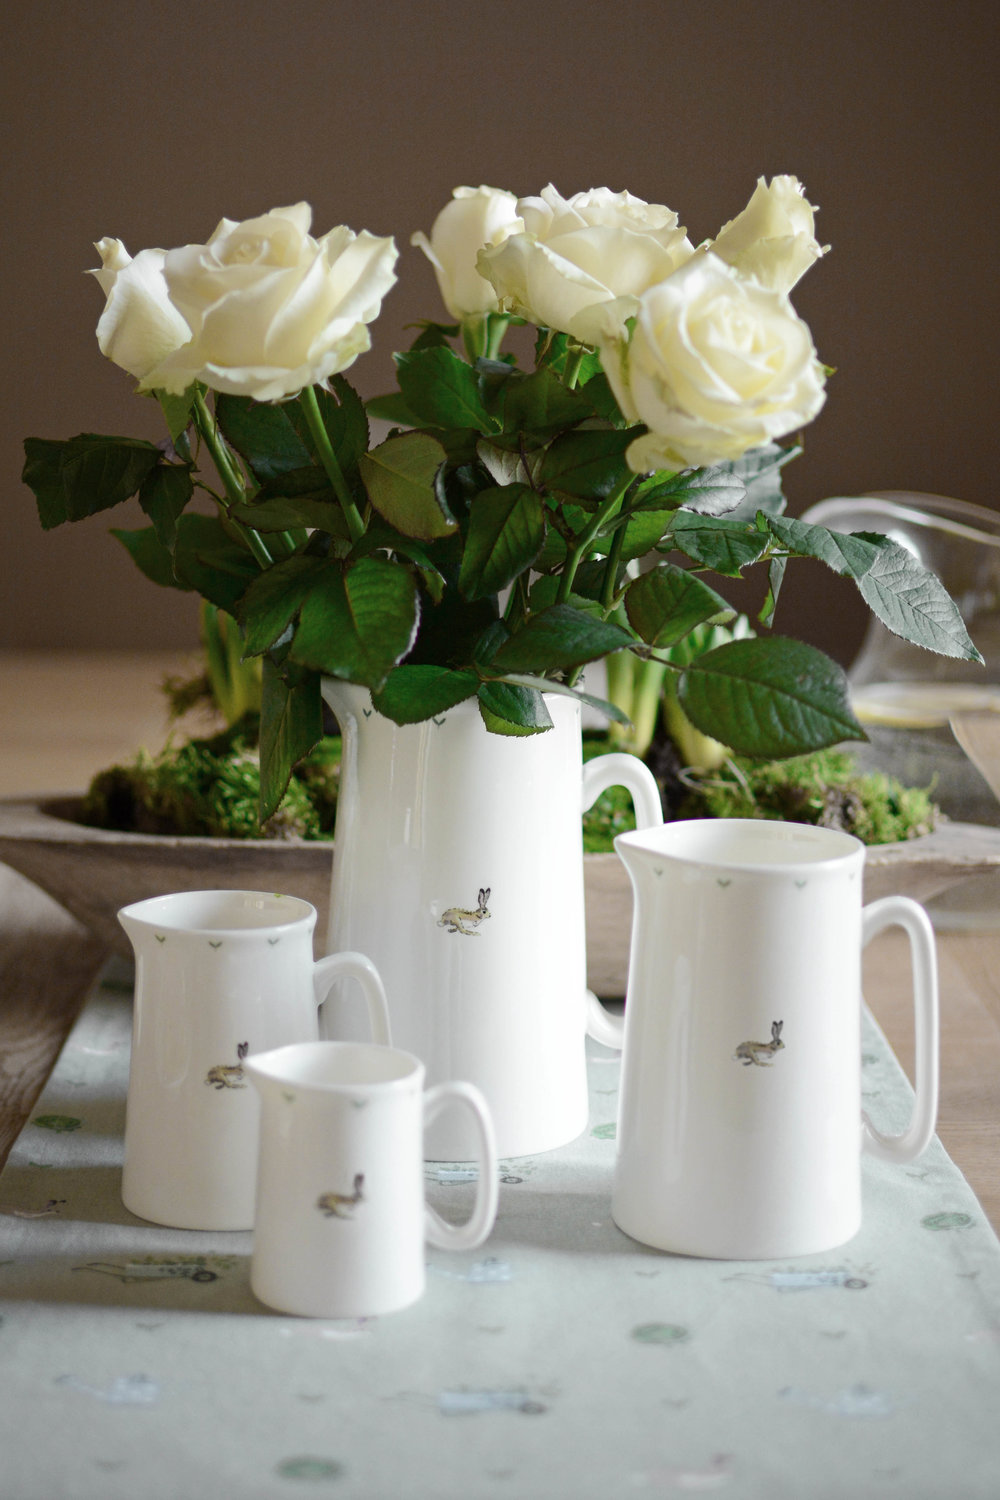 Image Credit:  http://sophieallport.com/ . Sophie Allport Bunny and Seed White China Jug. £14